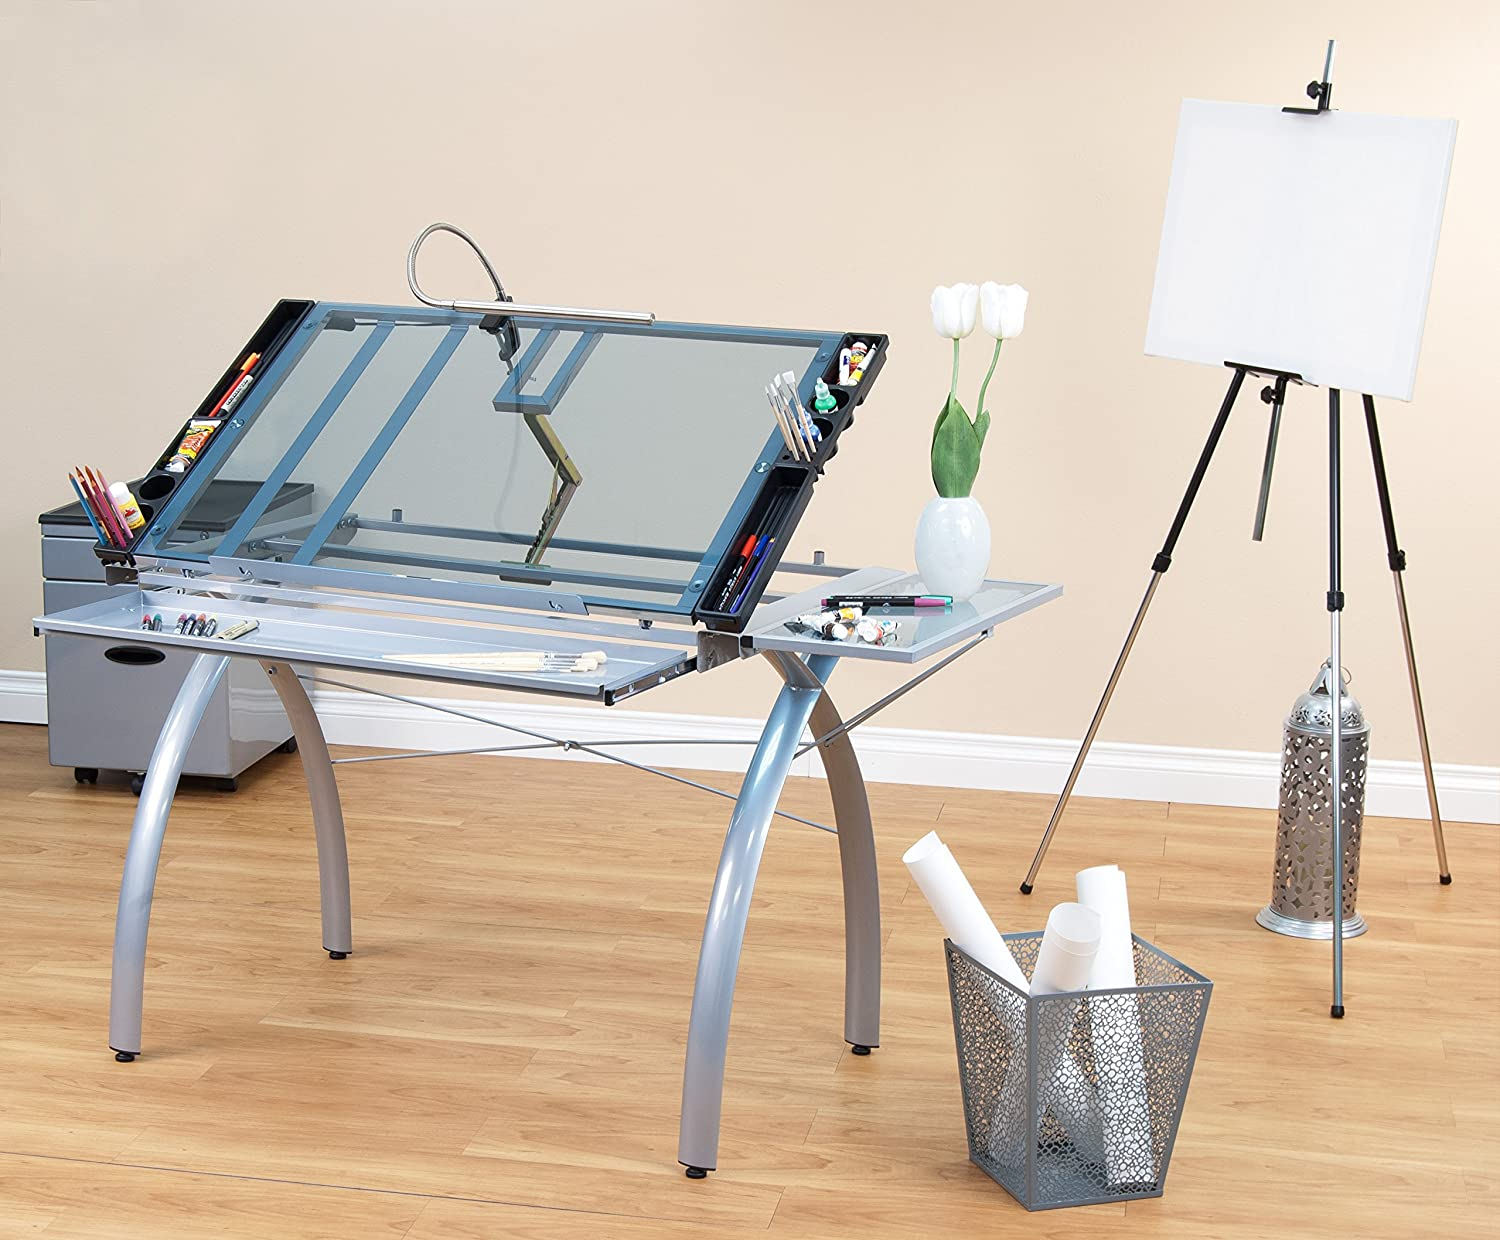 Studio designs futura craft station with glass top - Amazon Com Studio Designs 10095 Futura Craft Station With Folding Shelf Silver With Blue Glass Arts Crafts Sewing